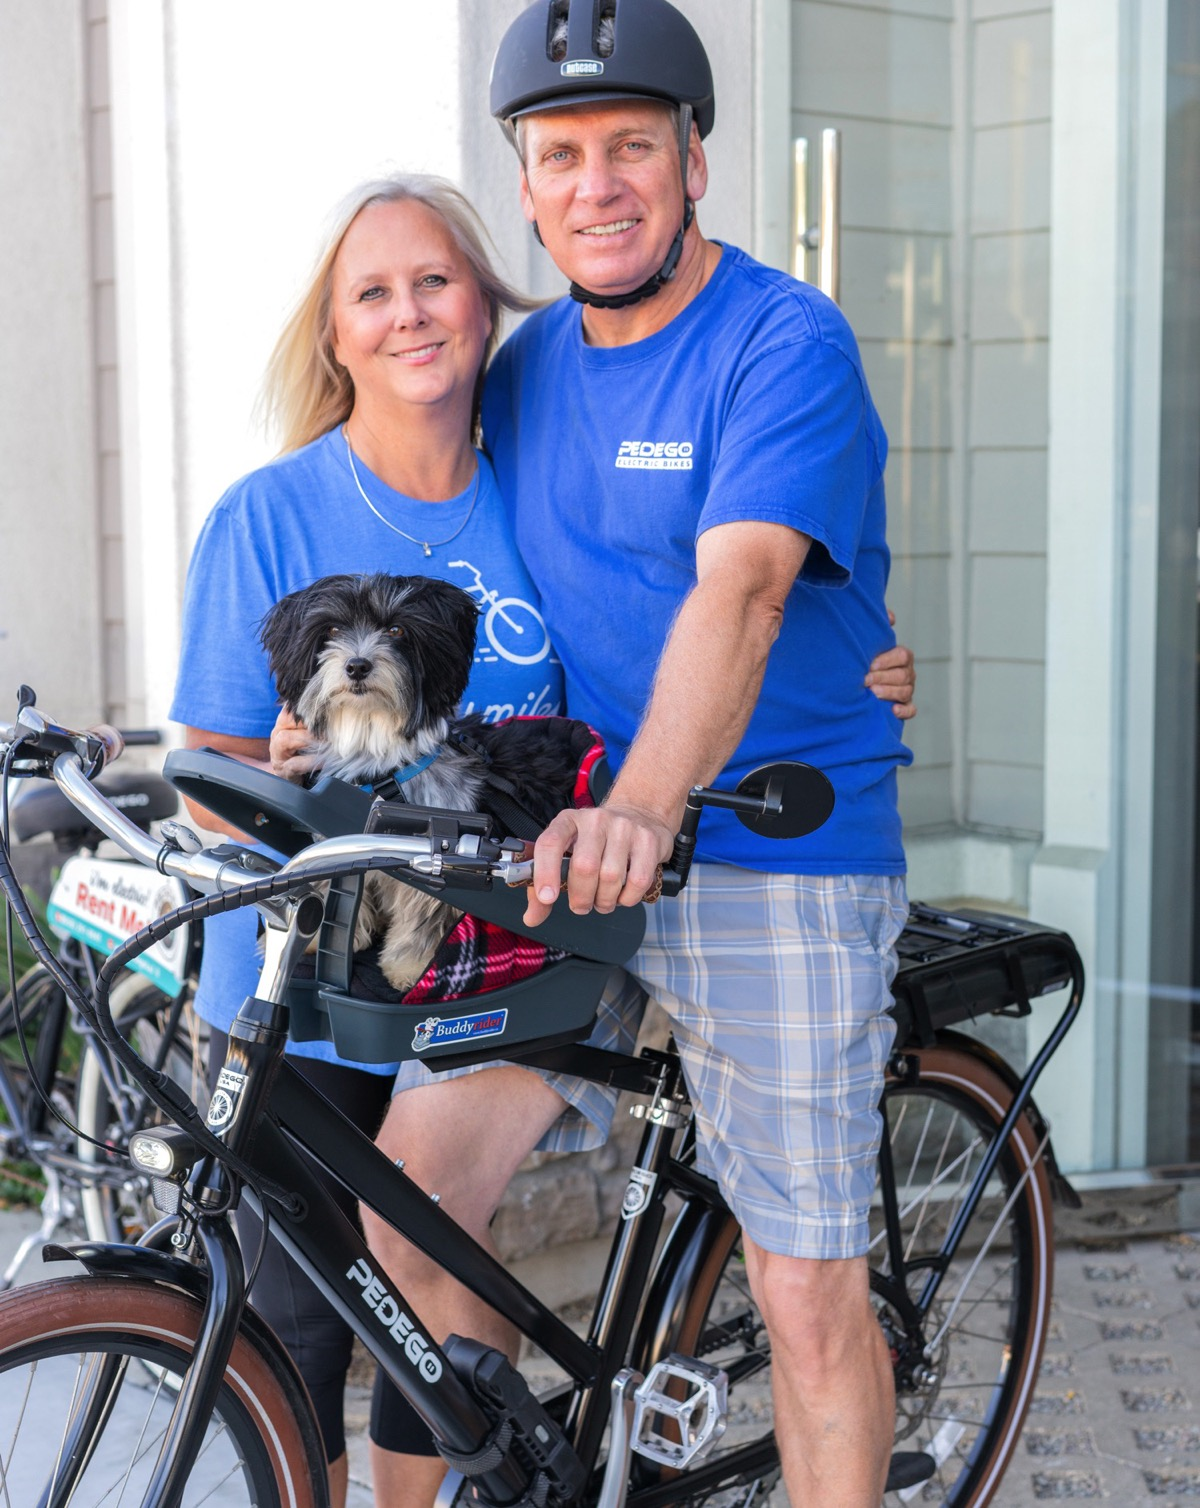 Tracy Sheffer and Terry Galka at Pedego Electric Bikes La Jolla with Riley